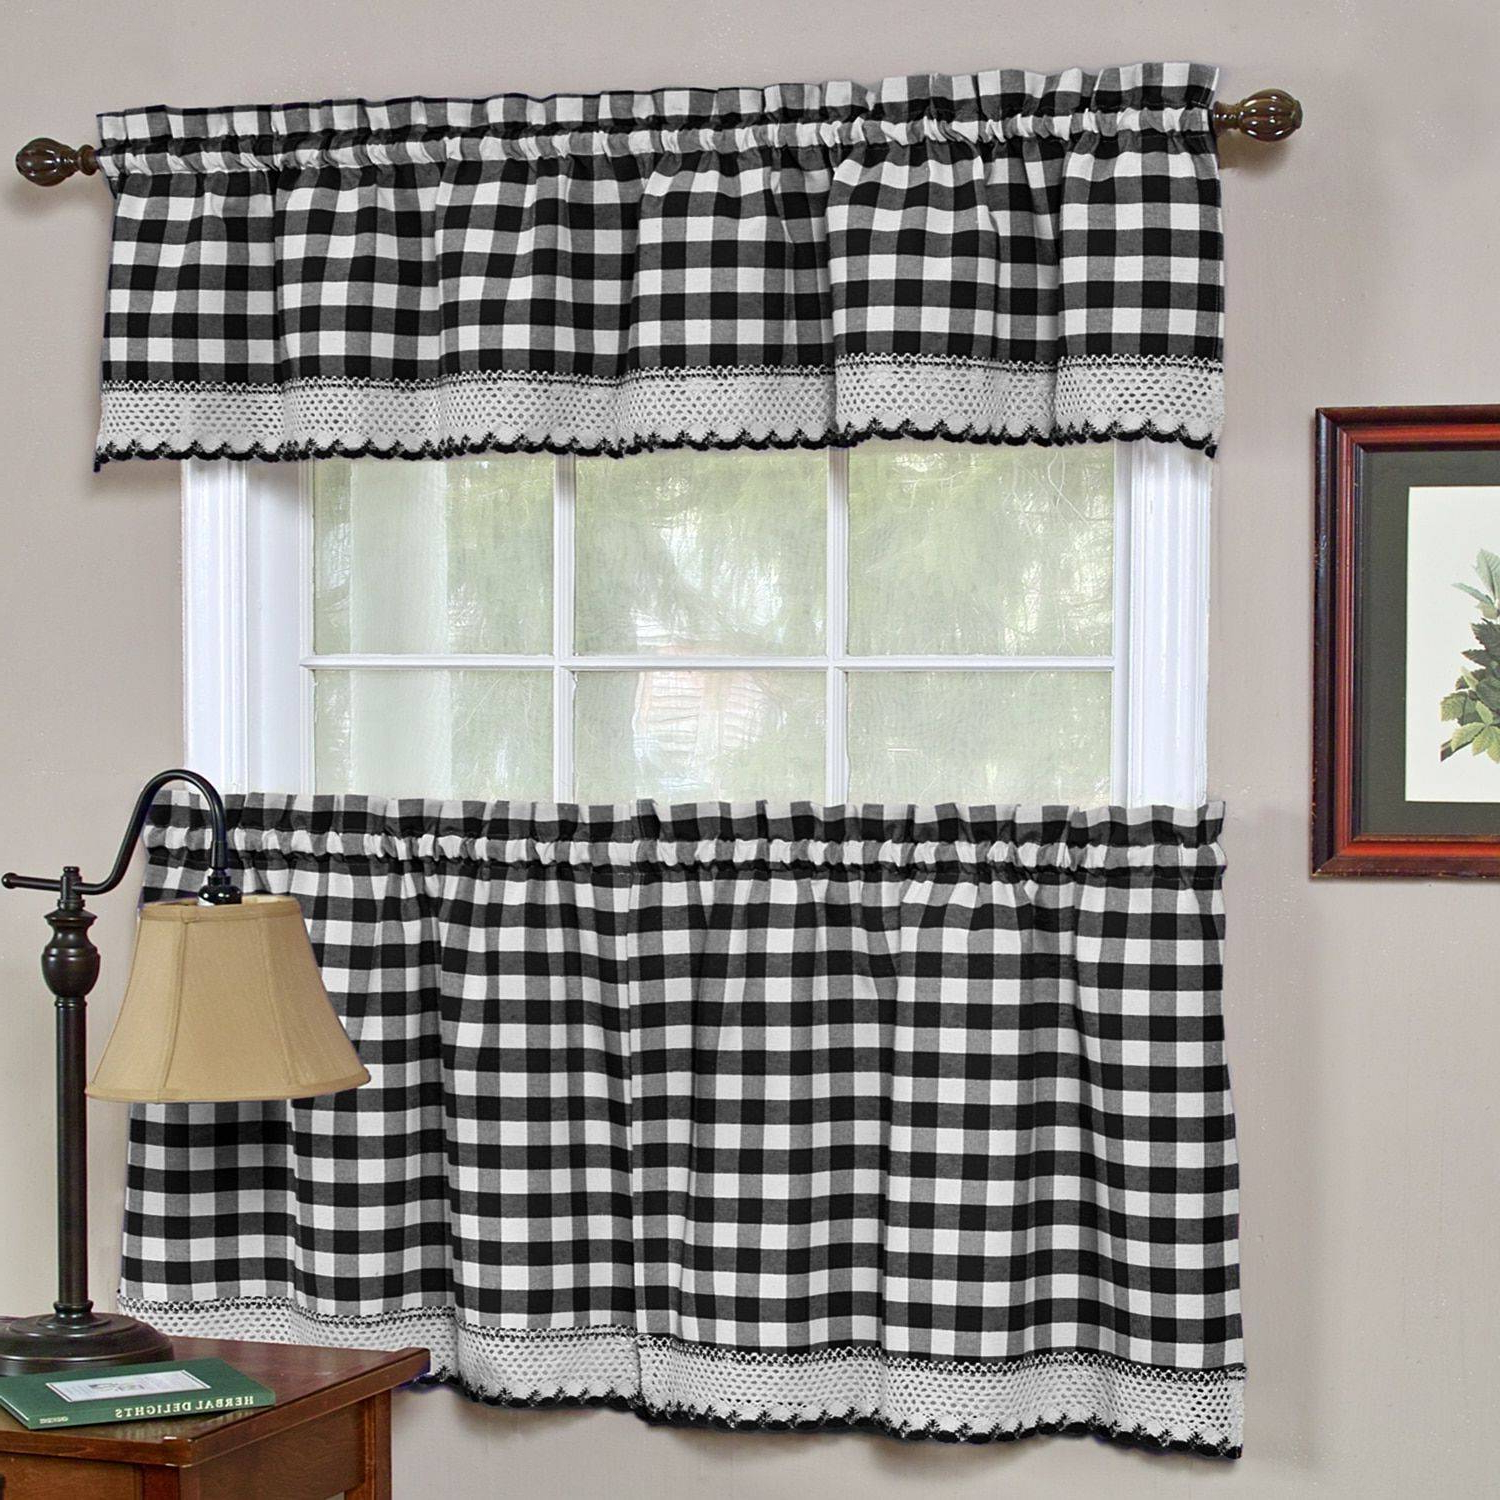 2021 Decorating Classic Check Kitchen Black And White Cotton For Fluttering Butterfly White Embroidered Tier, Swag, Or Valance Kitchen Curtains (View 16 of 20)